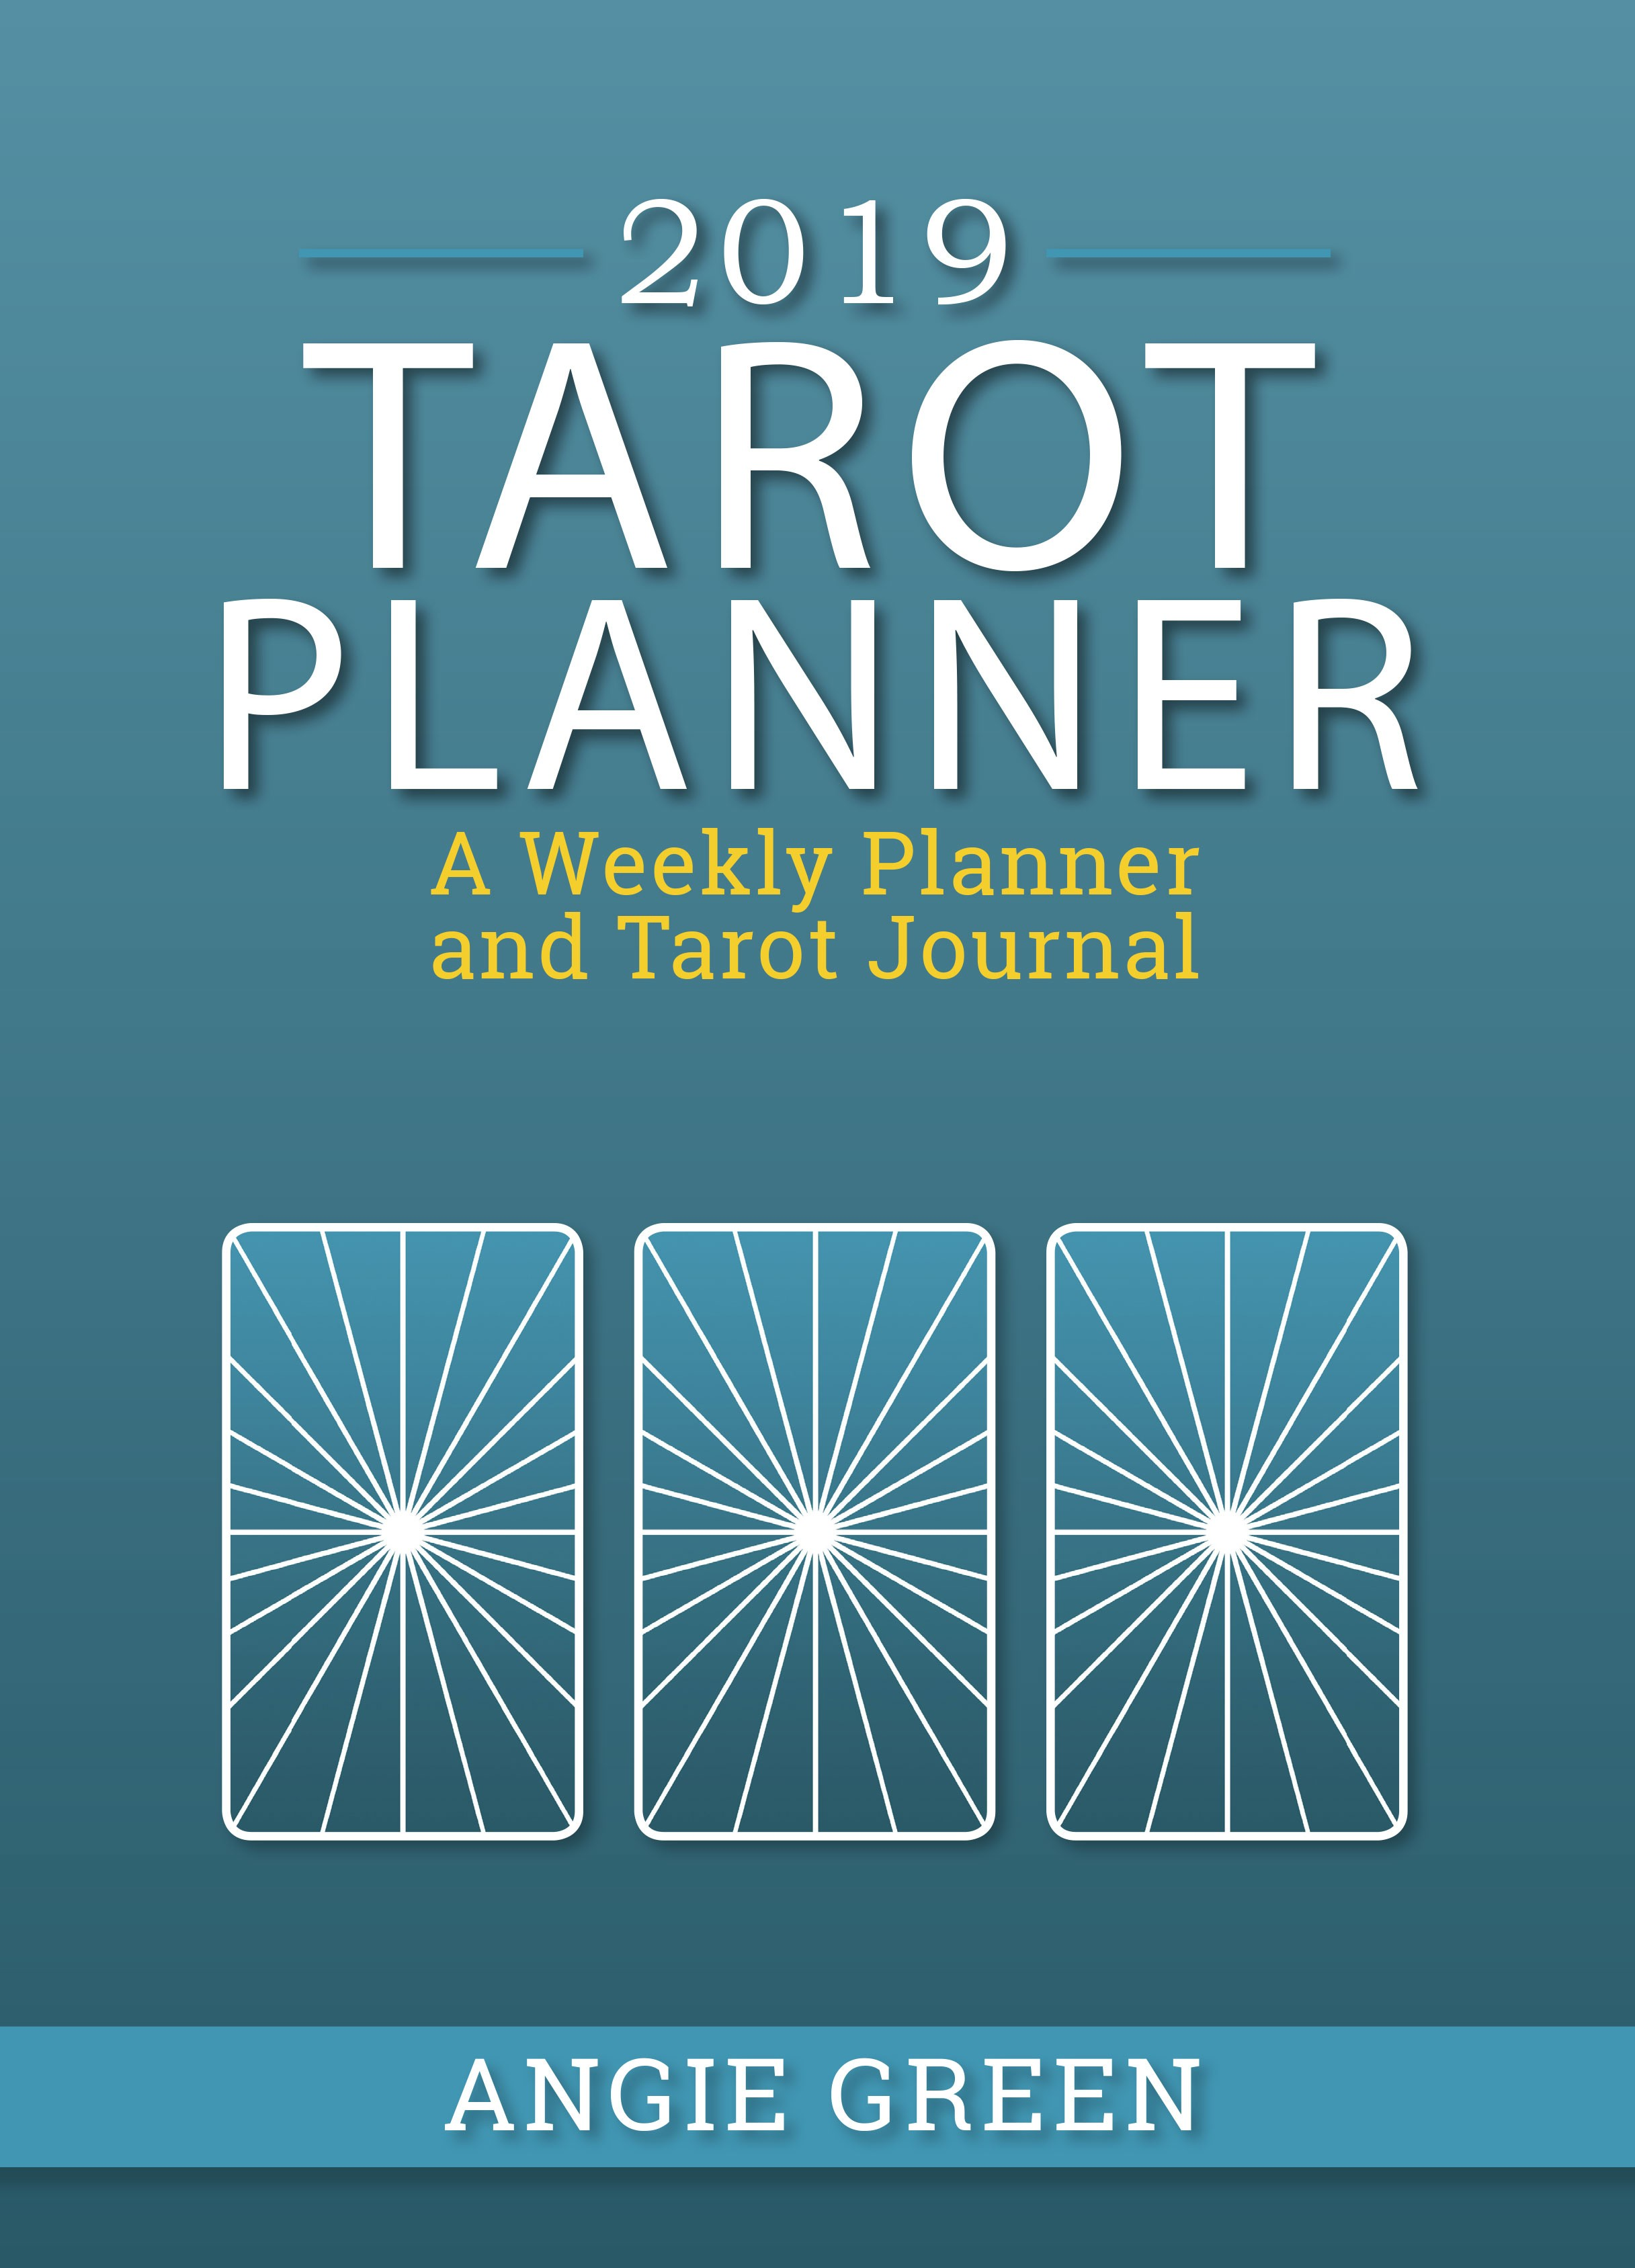 Do you love tarot? You'll LOVE using this weekly tarot planner to record your tarot spreads and daily tarot card draws. Get it from The Simple Tarot.